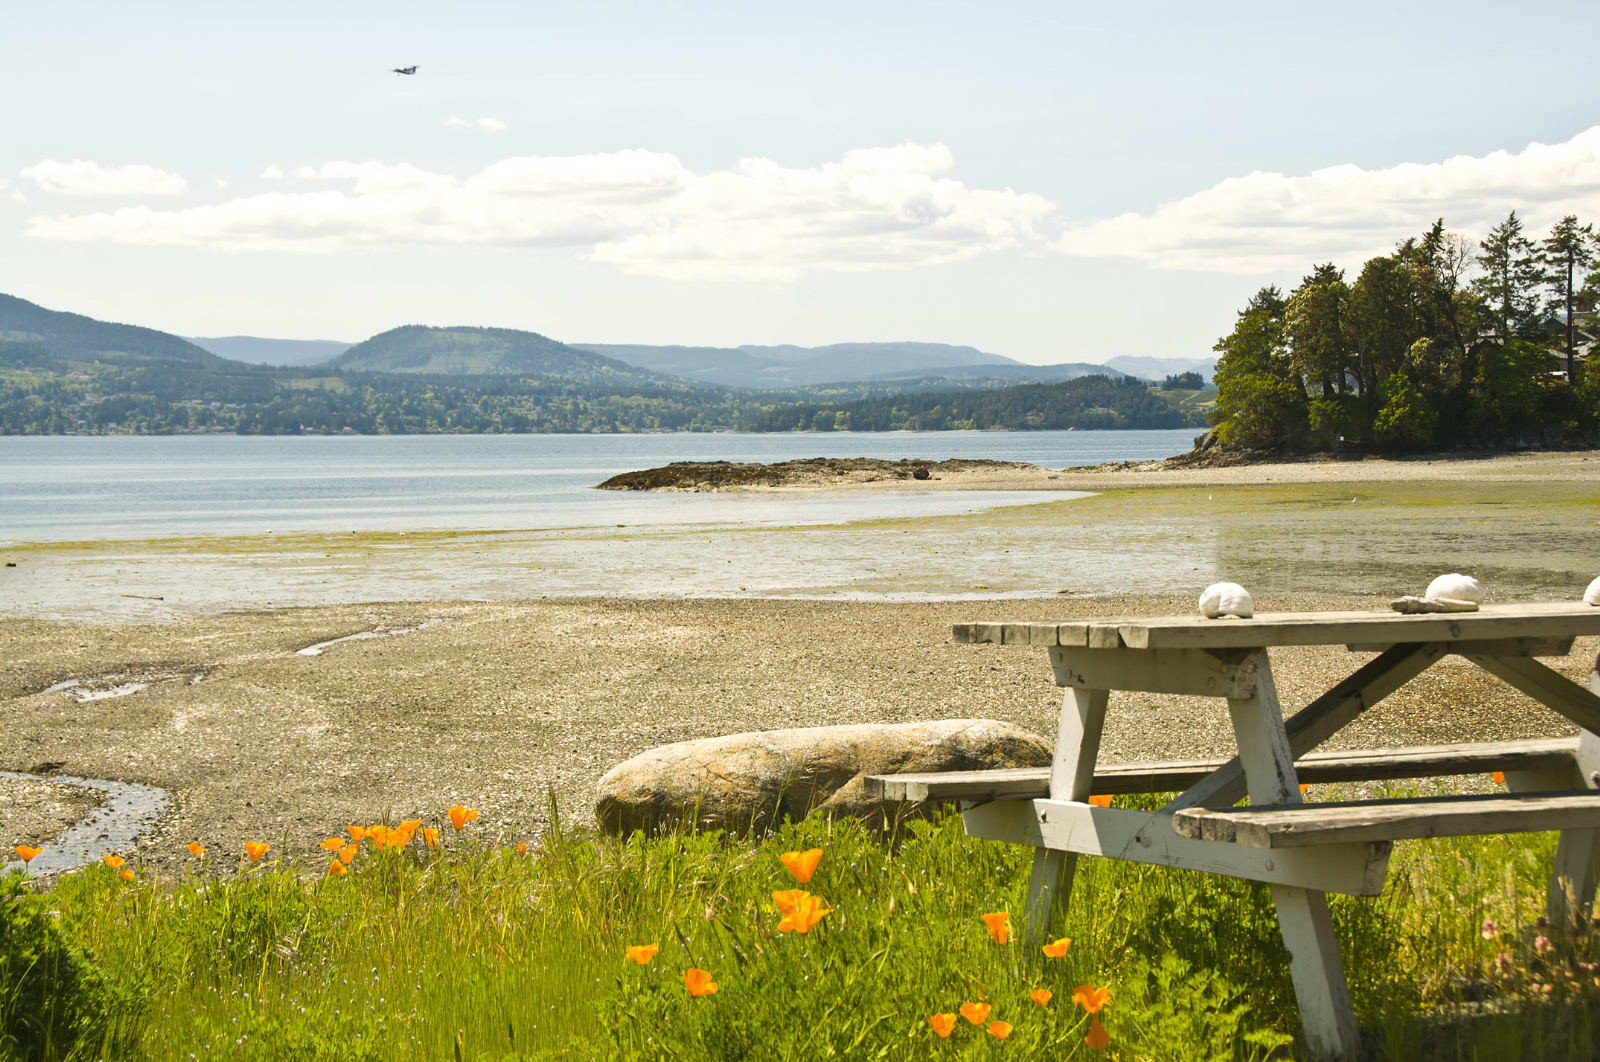 Main Photo: 645 Towner Park Rd in North Saanich: NS Deep Cove House for sale : MLS®# 370902